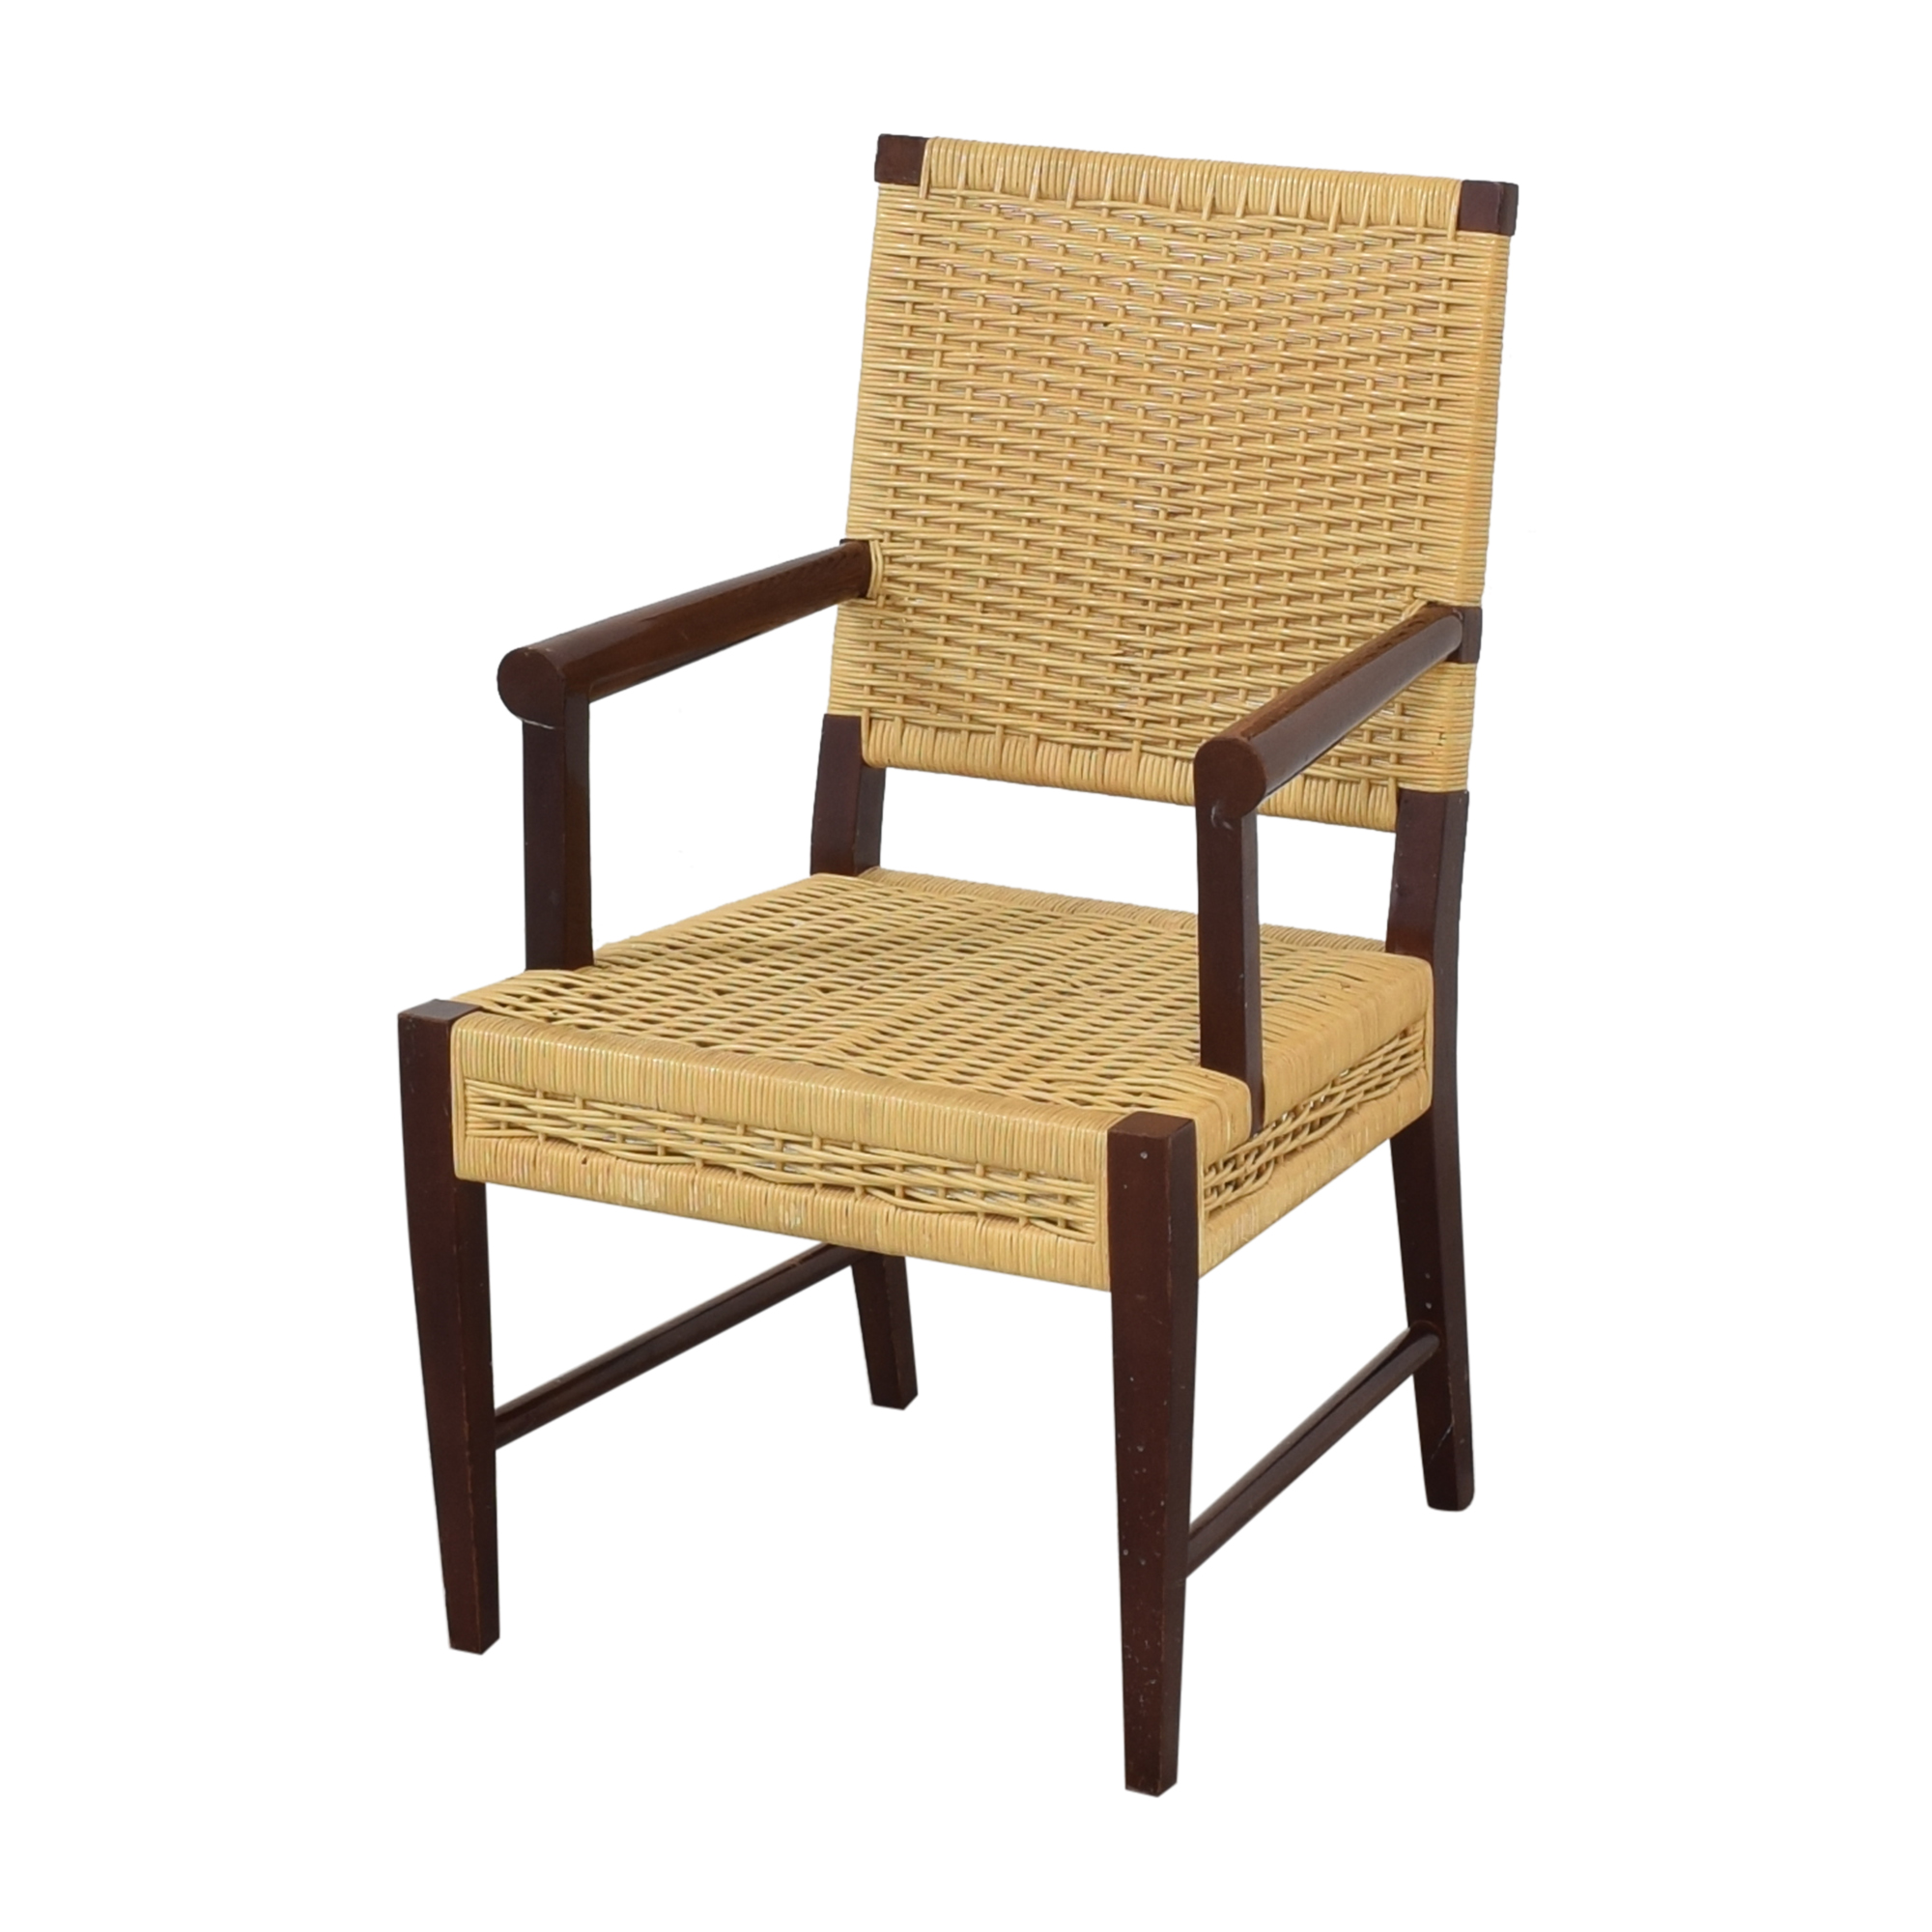 Donghia Dining Chairs in Merbau Wood with Raffia Weaving / Dining Chairs